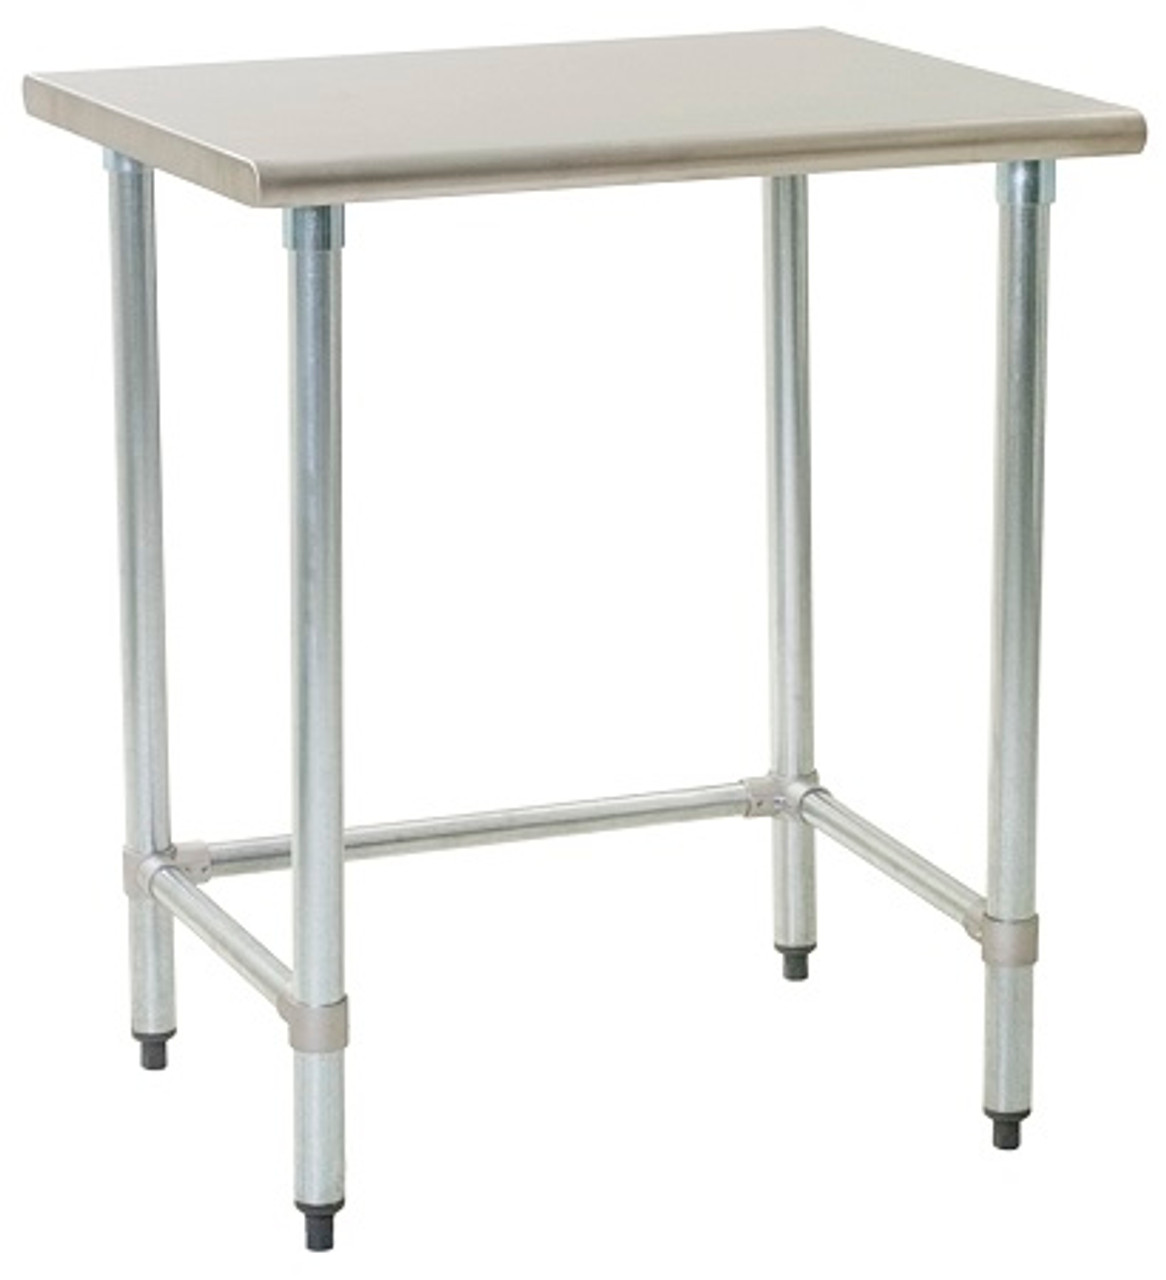 Stainless Steel Prep Tables; Budget Kitchen Grade, Type 430 Stainless Steel  Top, Galvanized Base, NSF, 24\